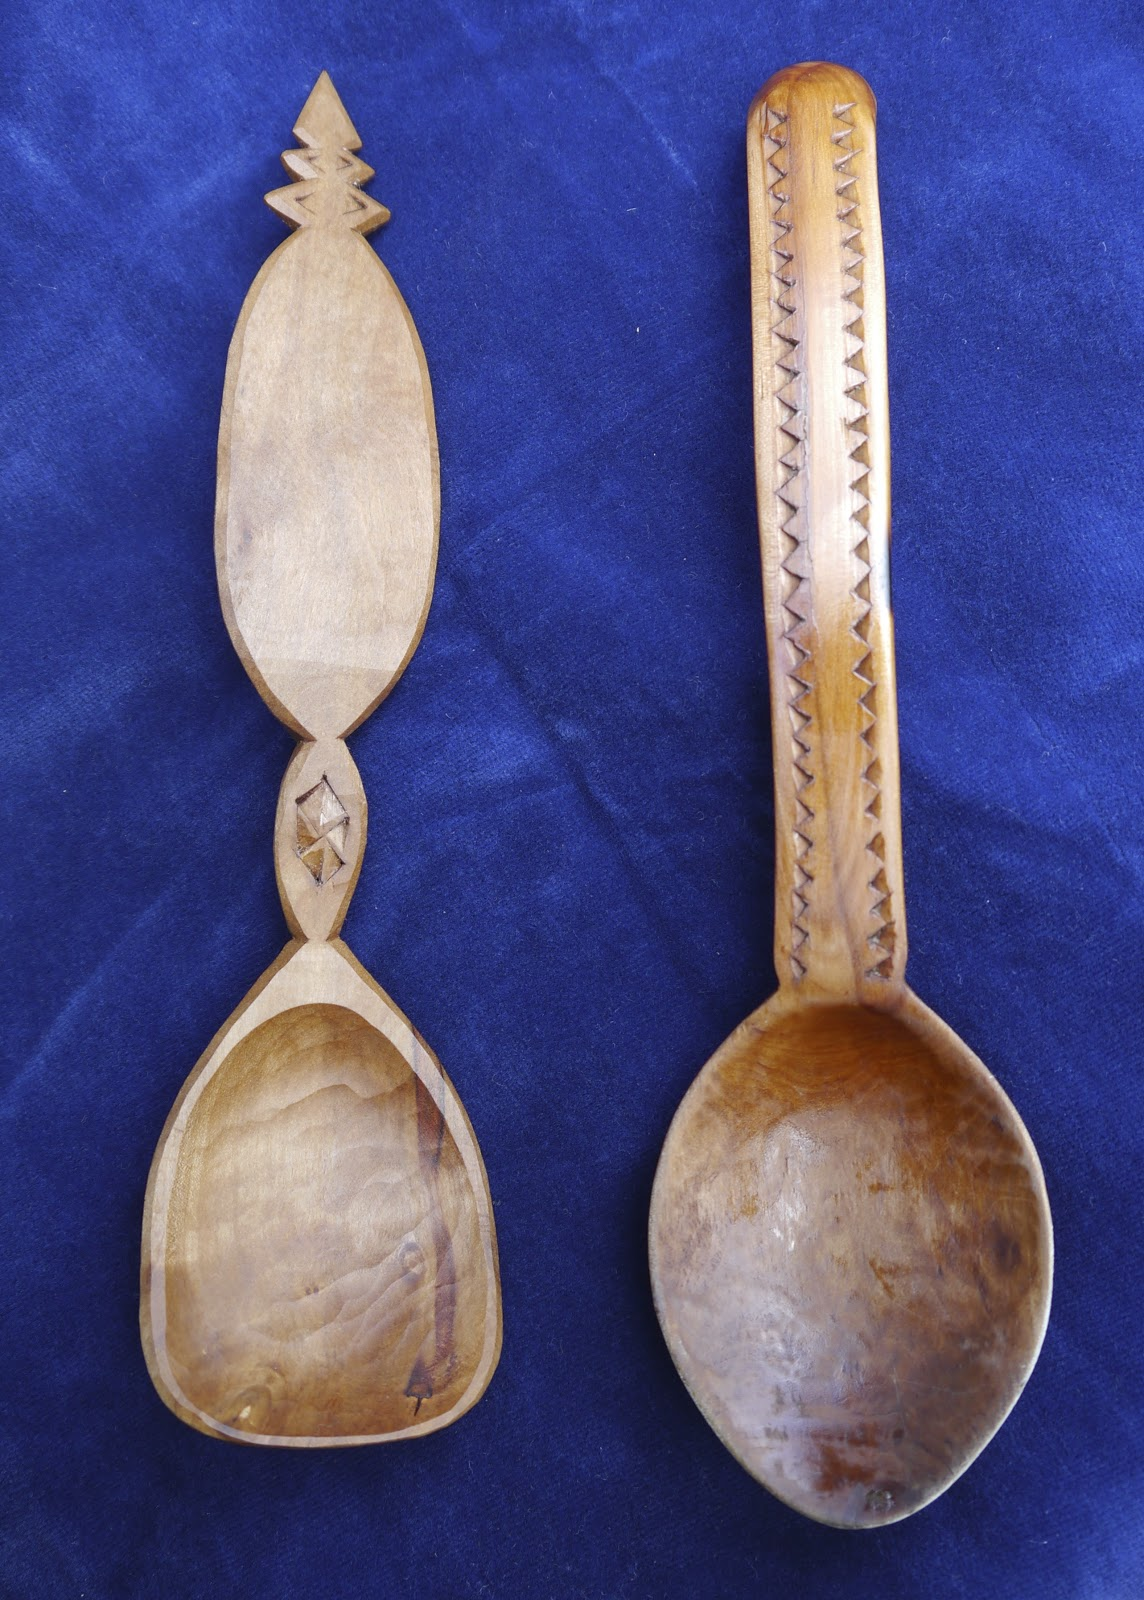 Spoon carving first steps recent kuksa and spoons